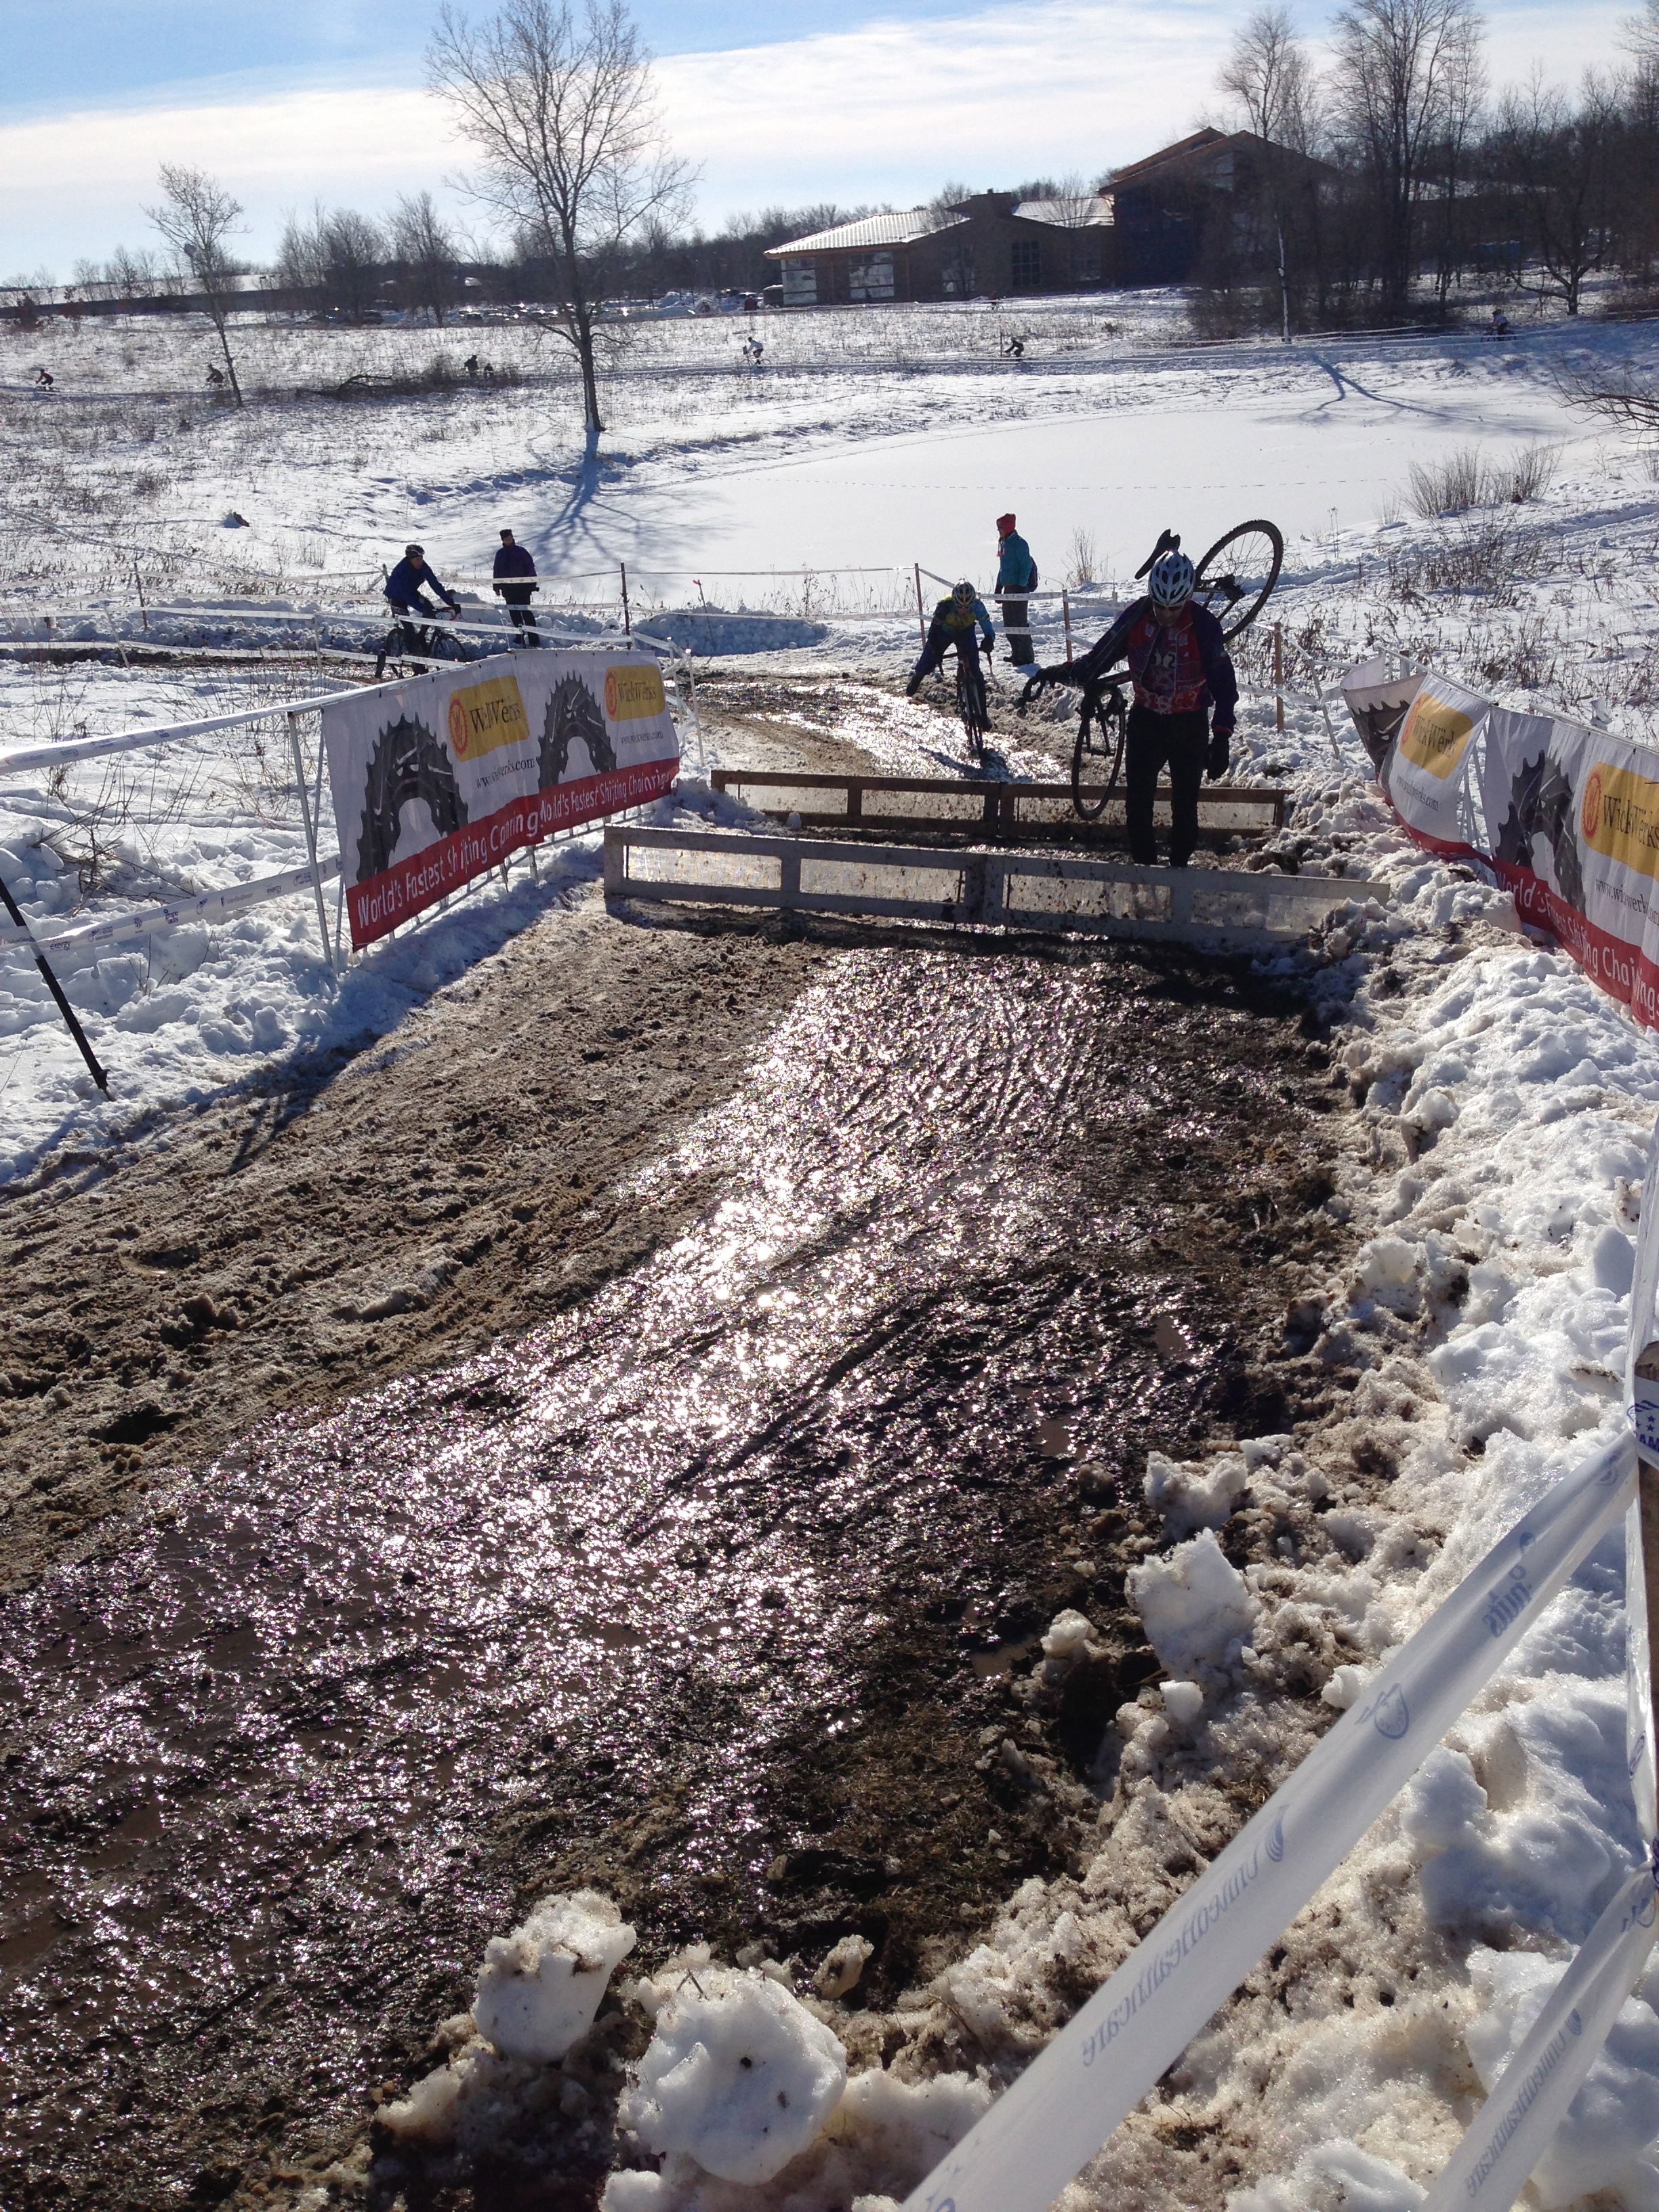 The course after the barriers is frozen mud, which is rideable.